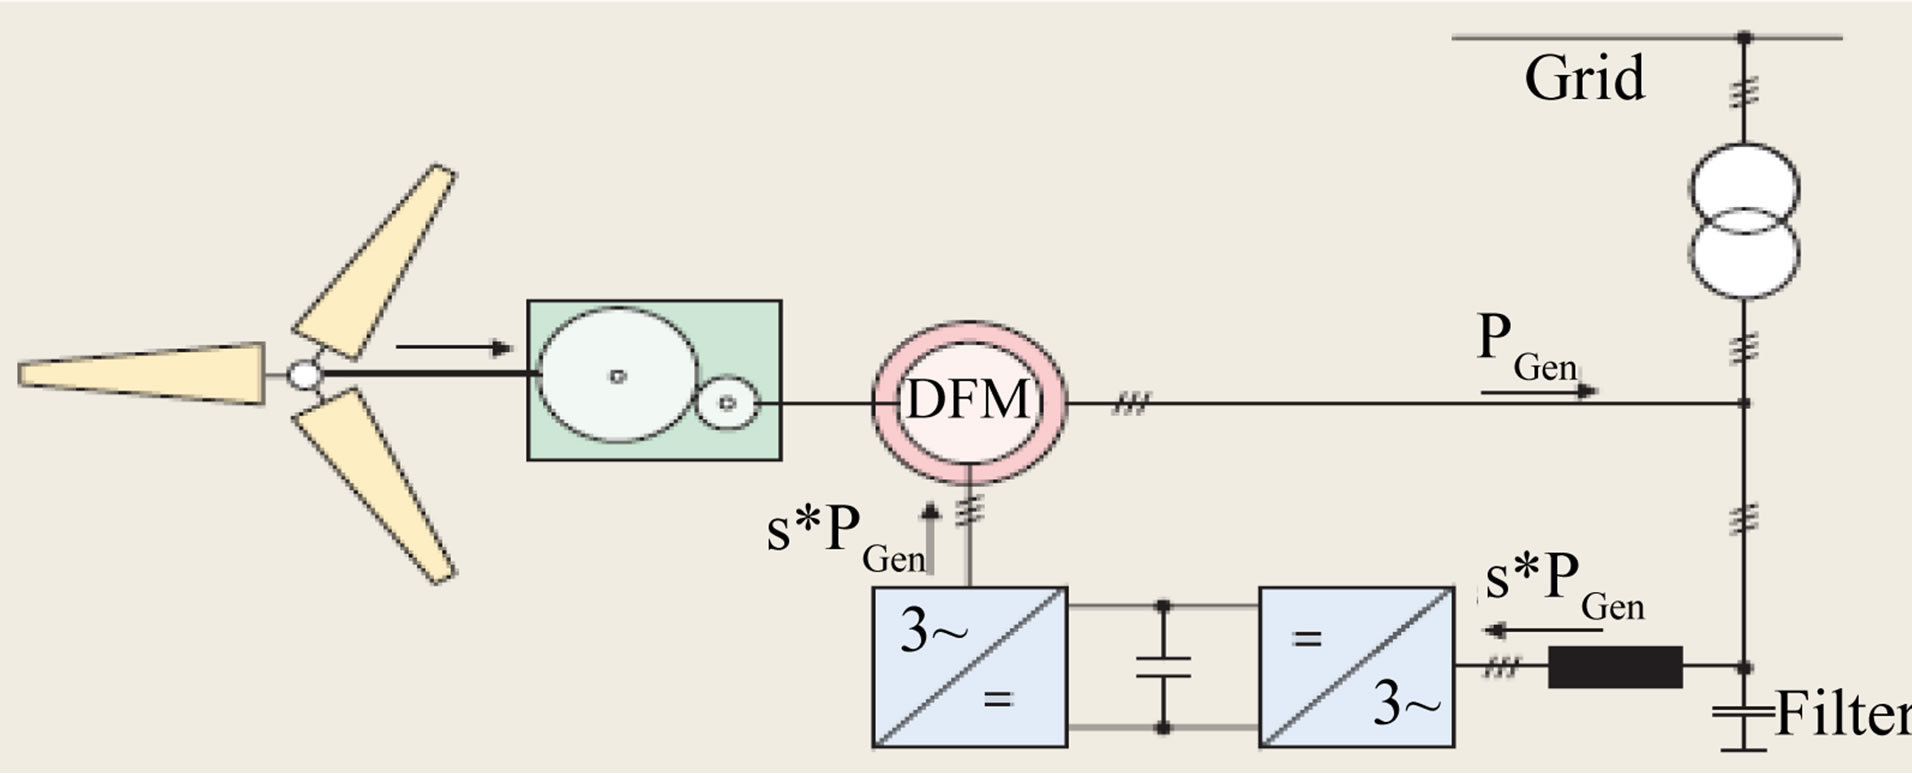 doubly fed induction generators thesis Native asg concept that consists of a doubly fed induction generator (dfig) with a four-quadrant ac-to-ac converter based on insulated gate bipolar transistors (igbts) con.